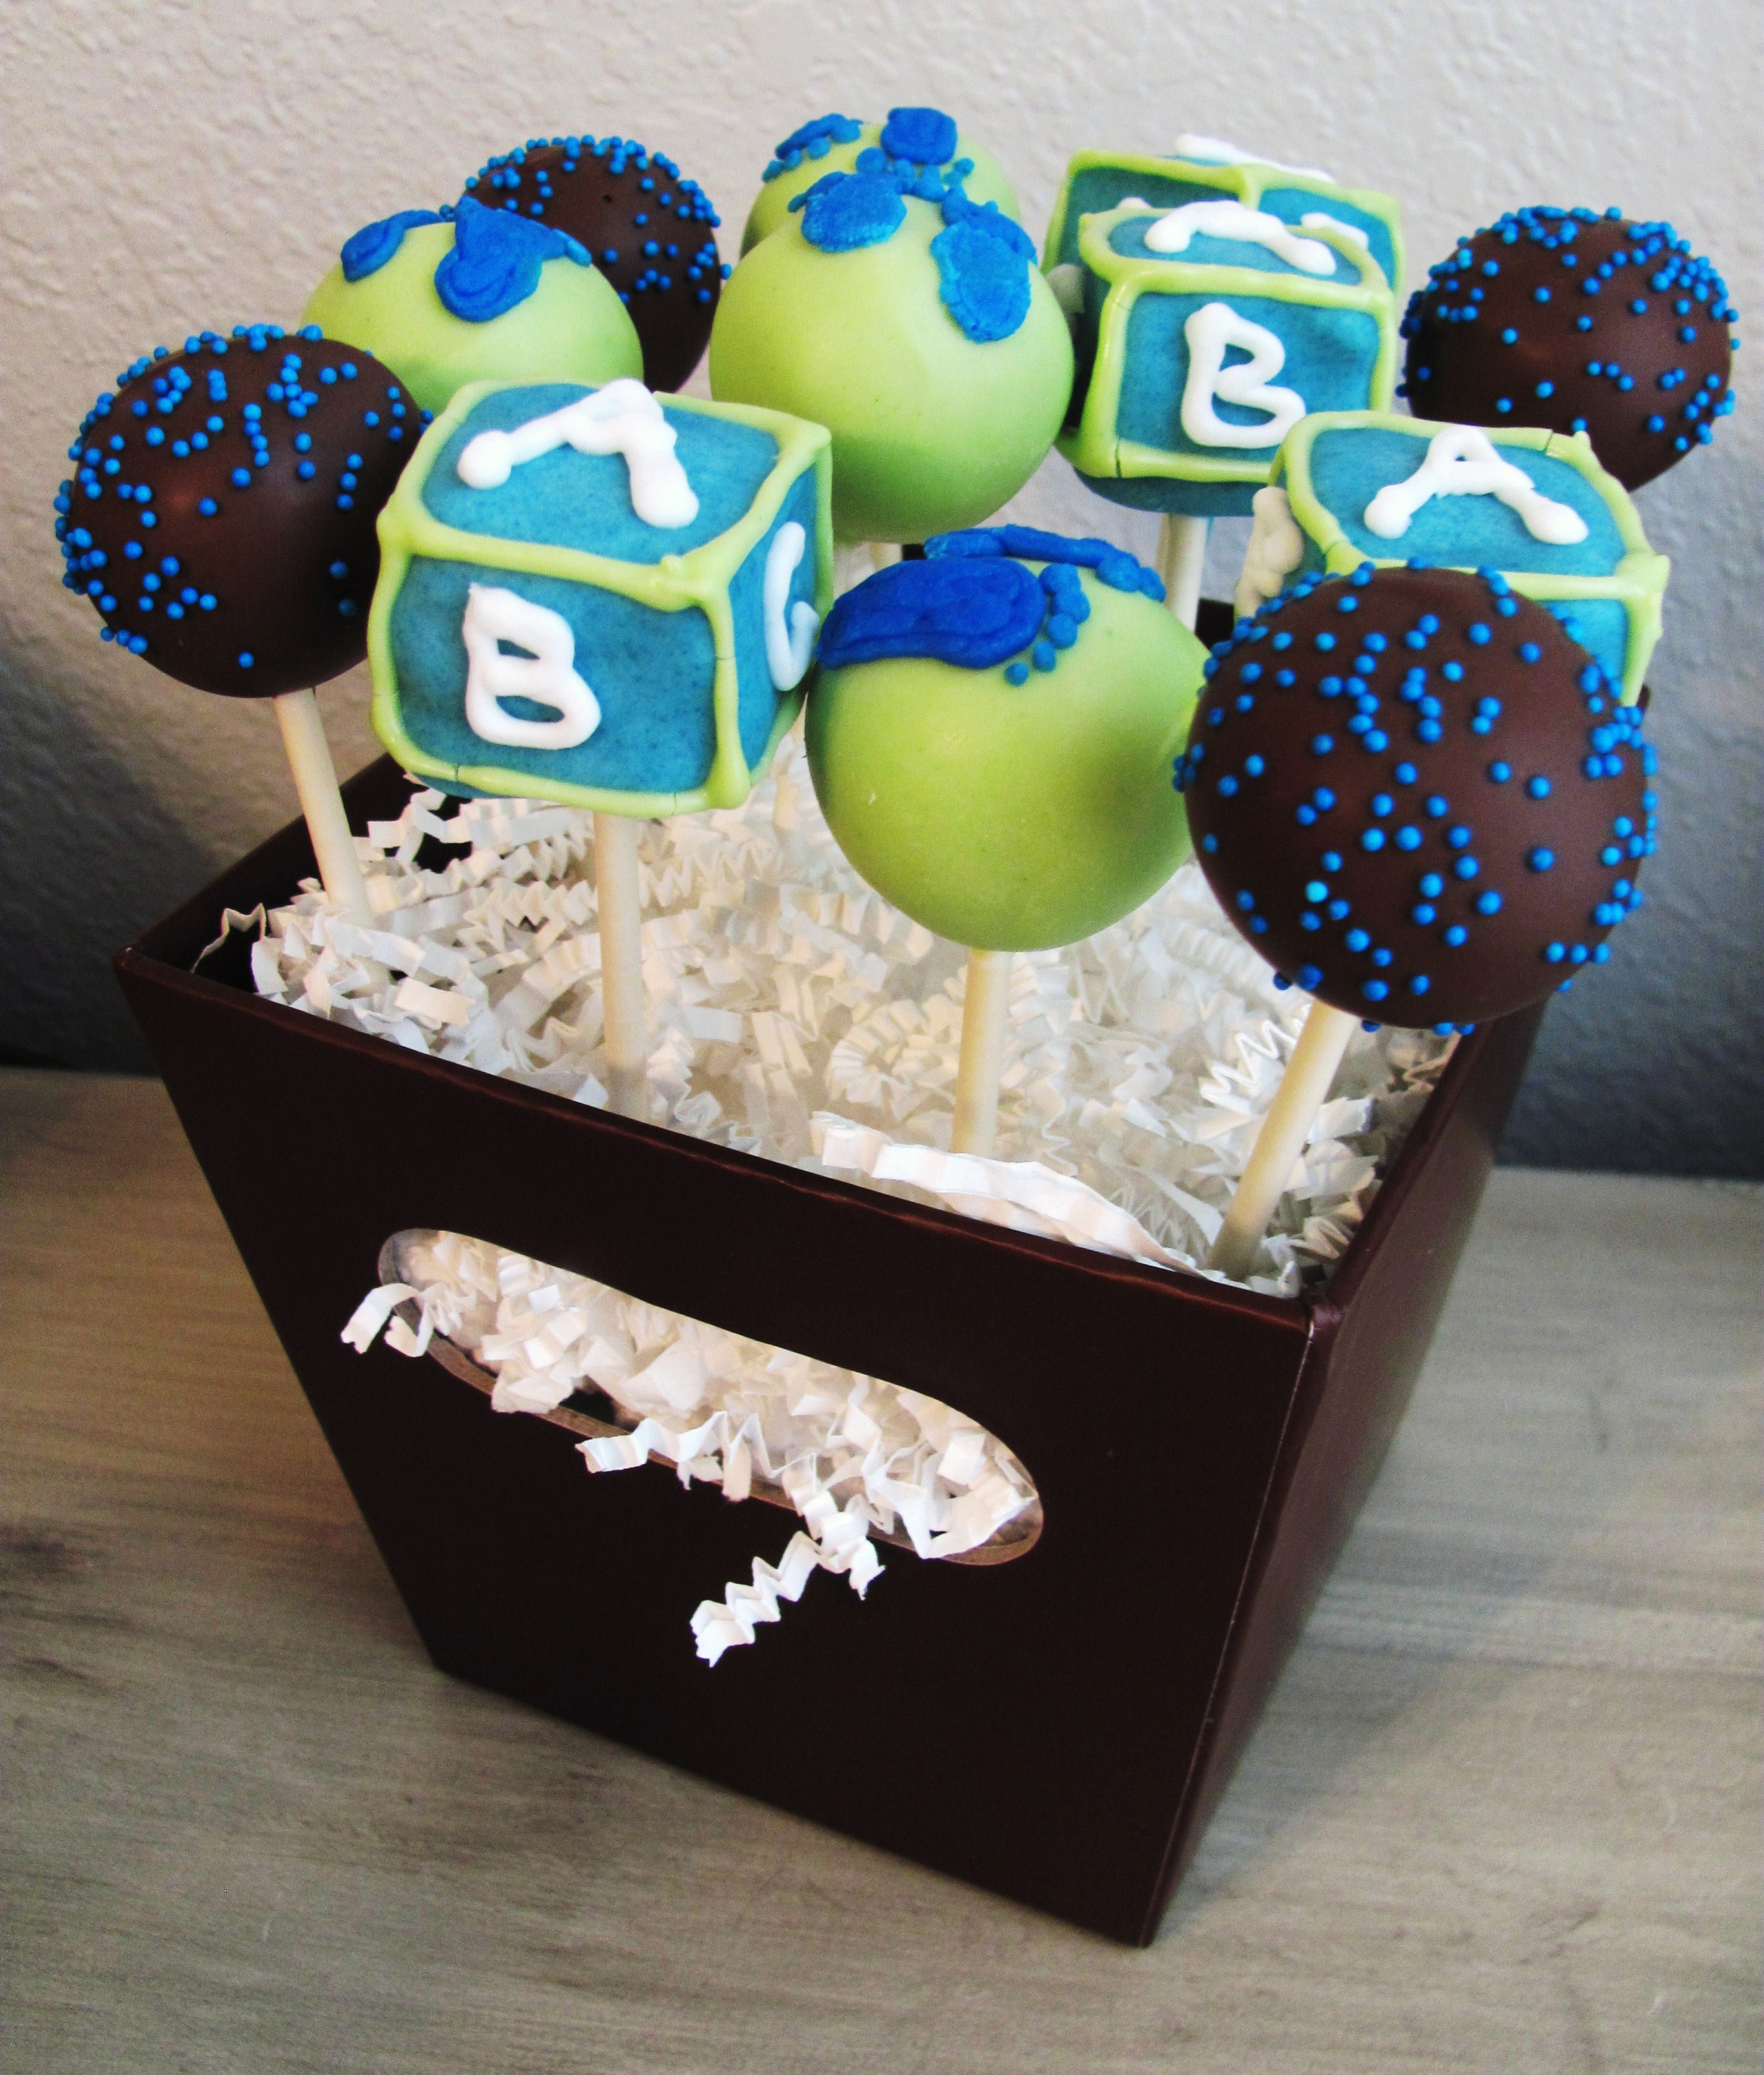 Cake Pop Designs For Baby Shower : Baby Shower Cake Pops Pinterest Party Invitations Ideas